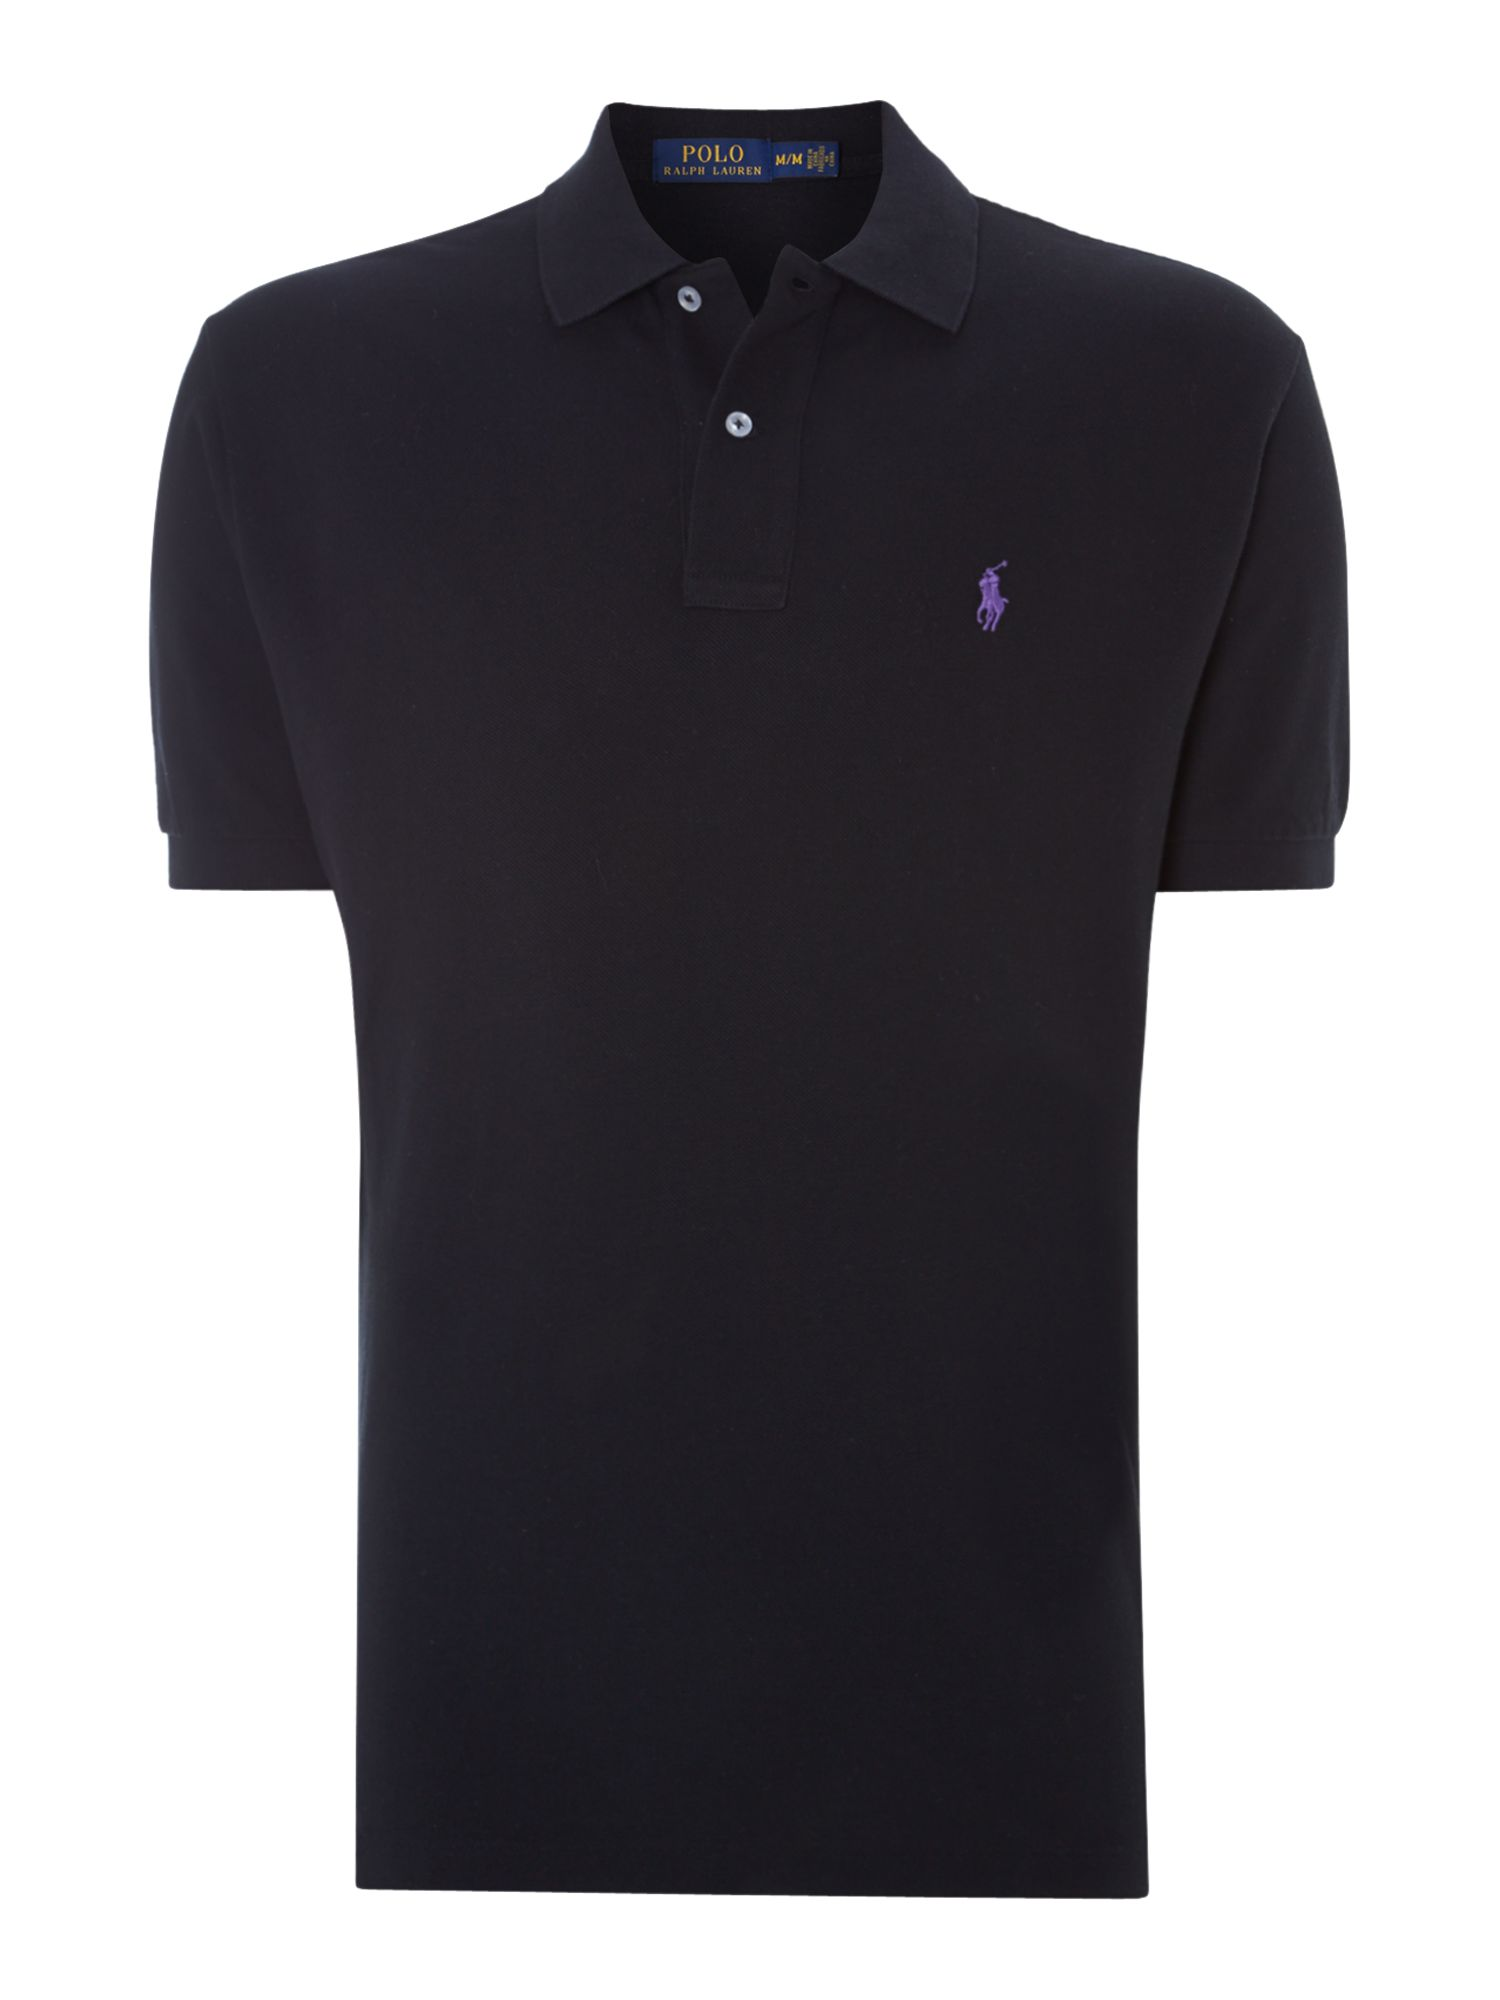 Classic fit knit collar polo shirt